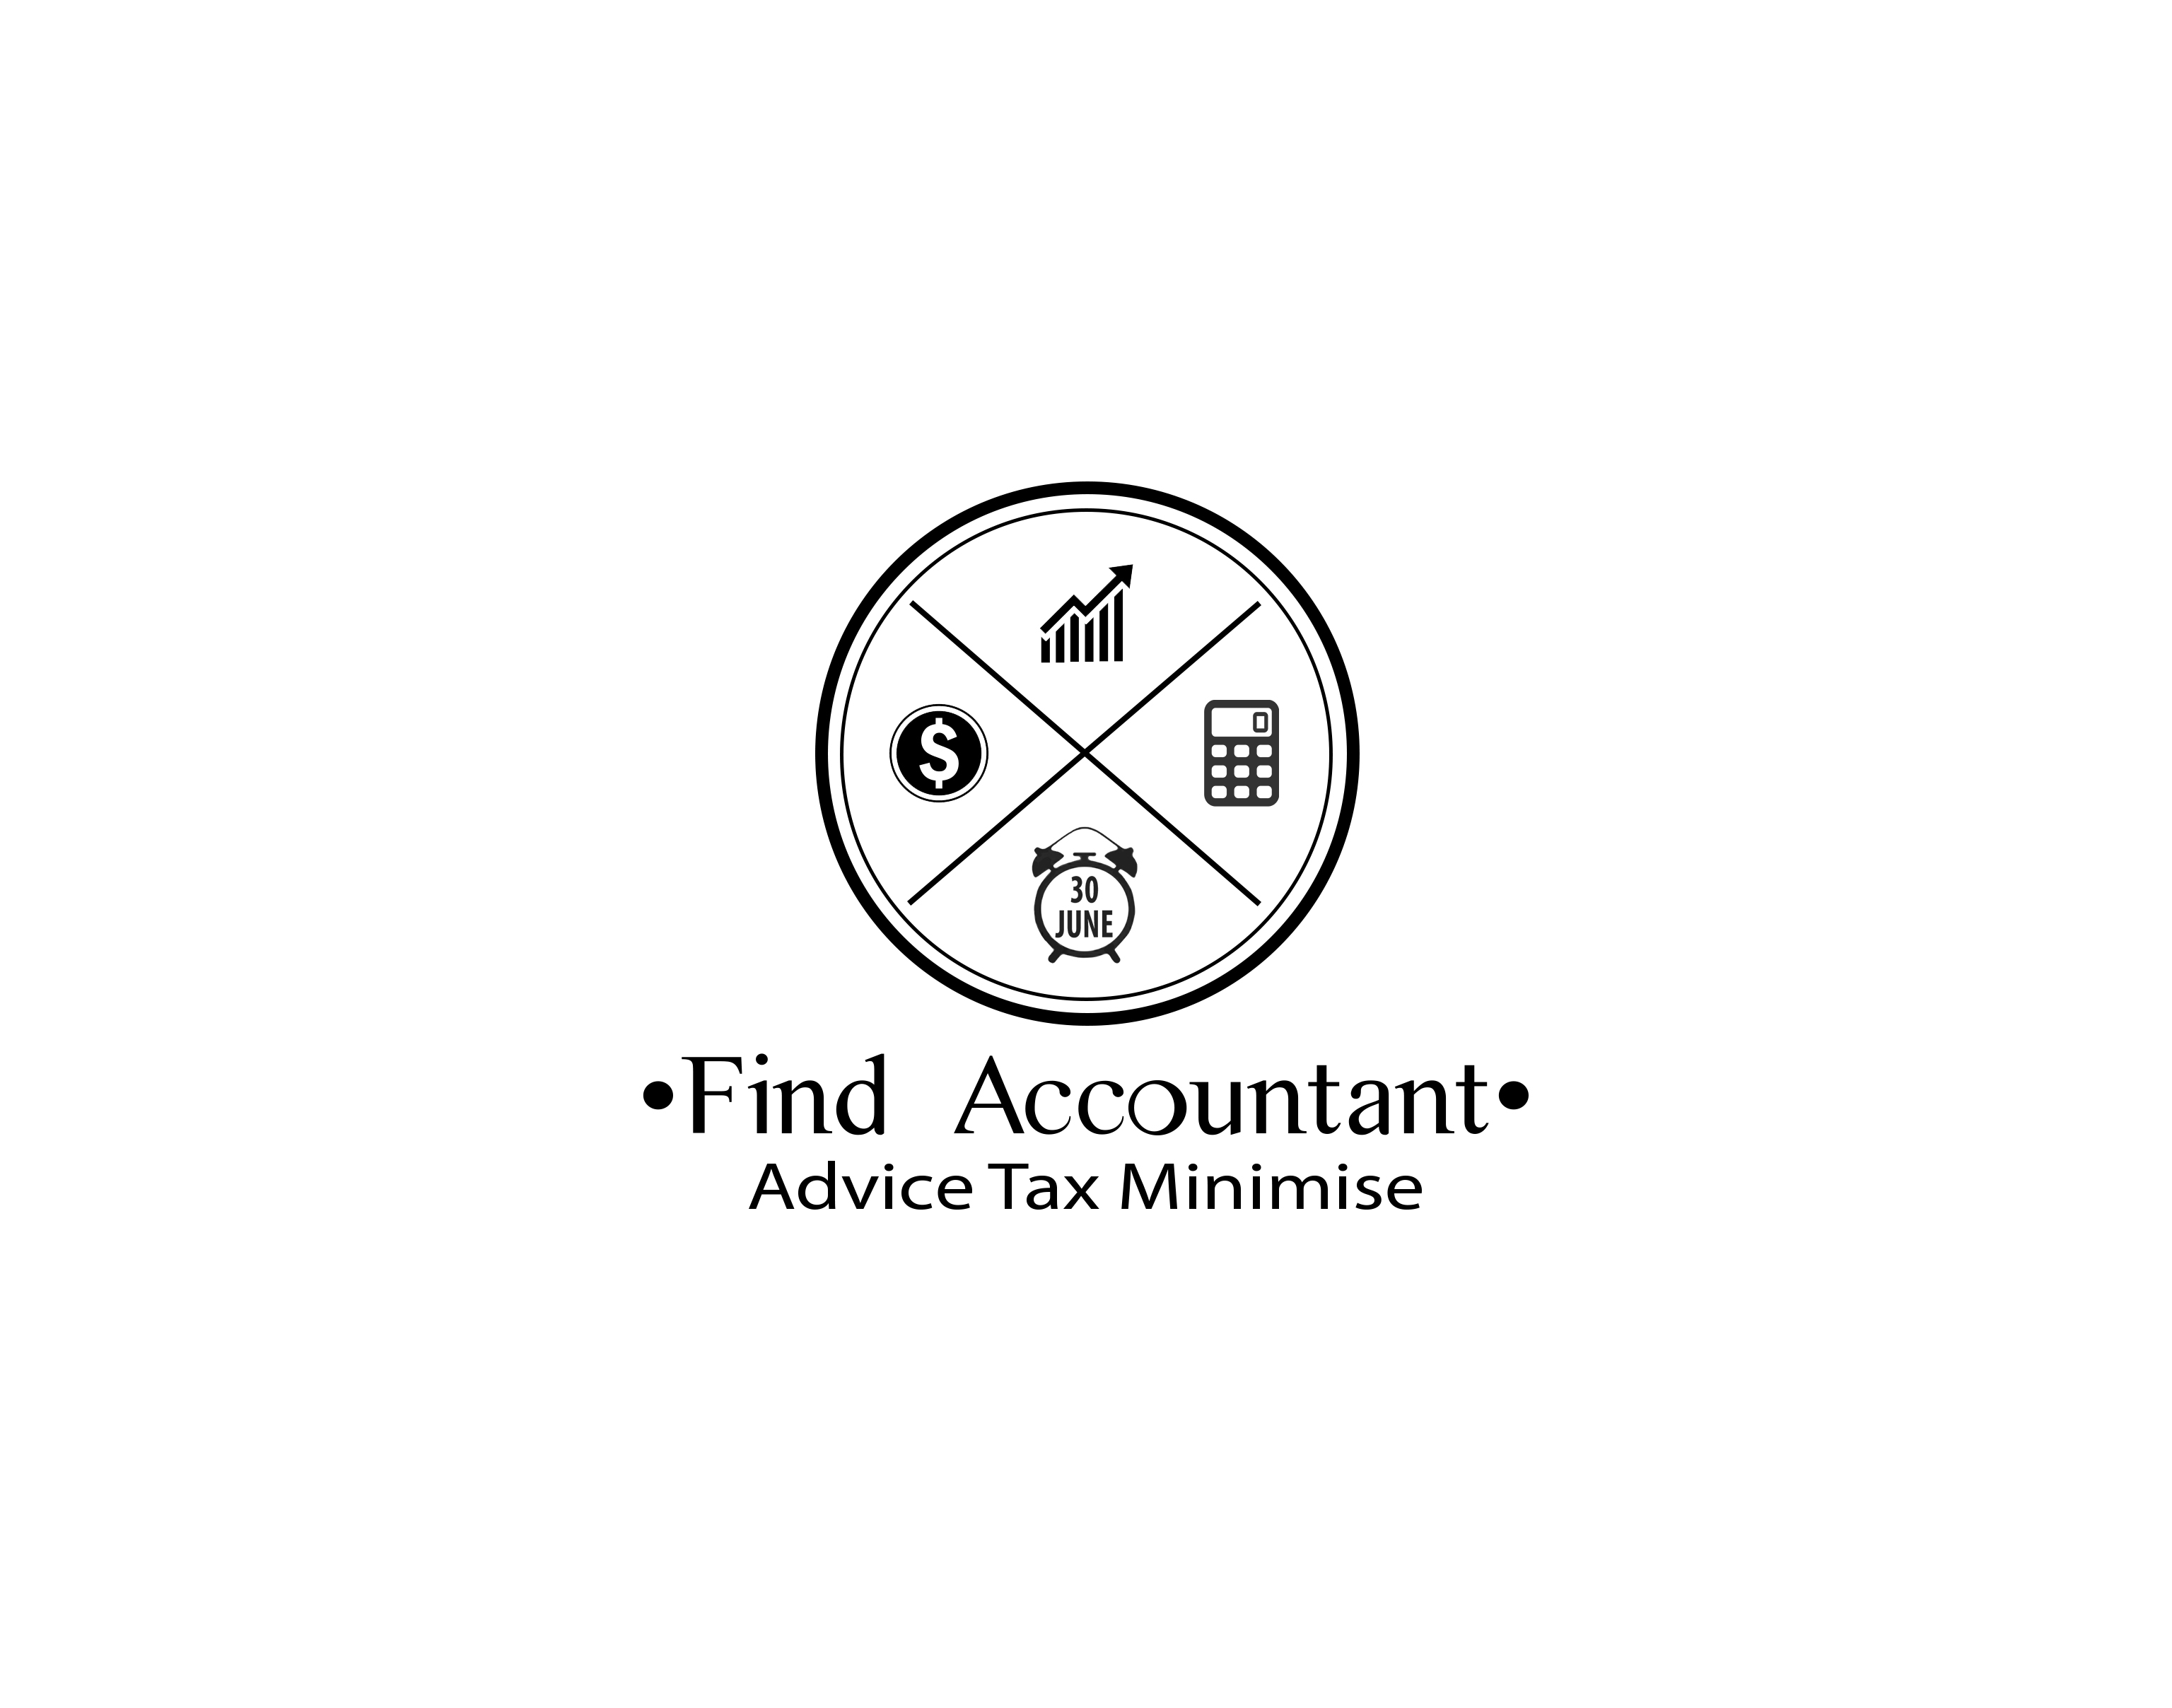 Find Accountant Logo